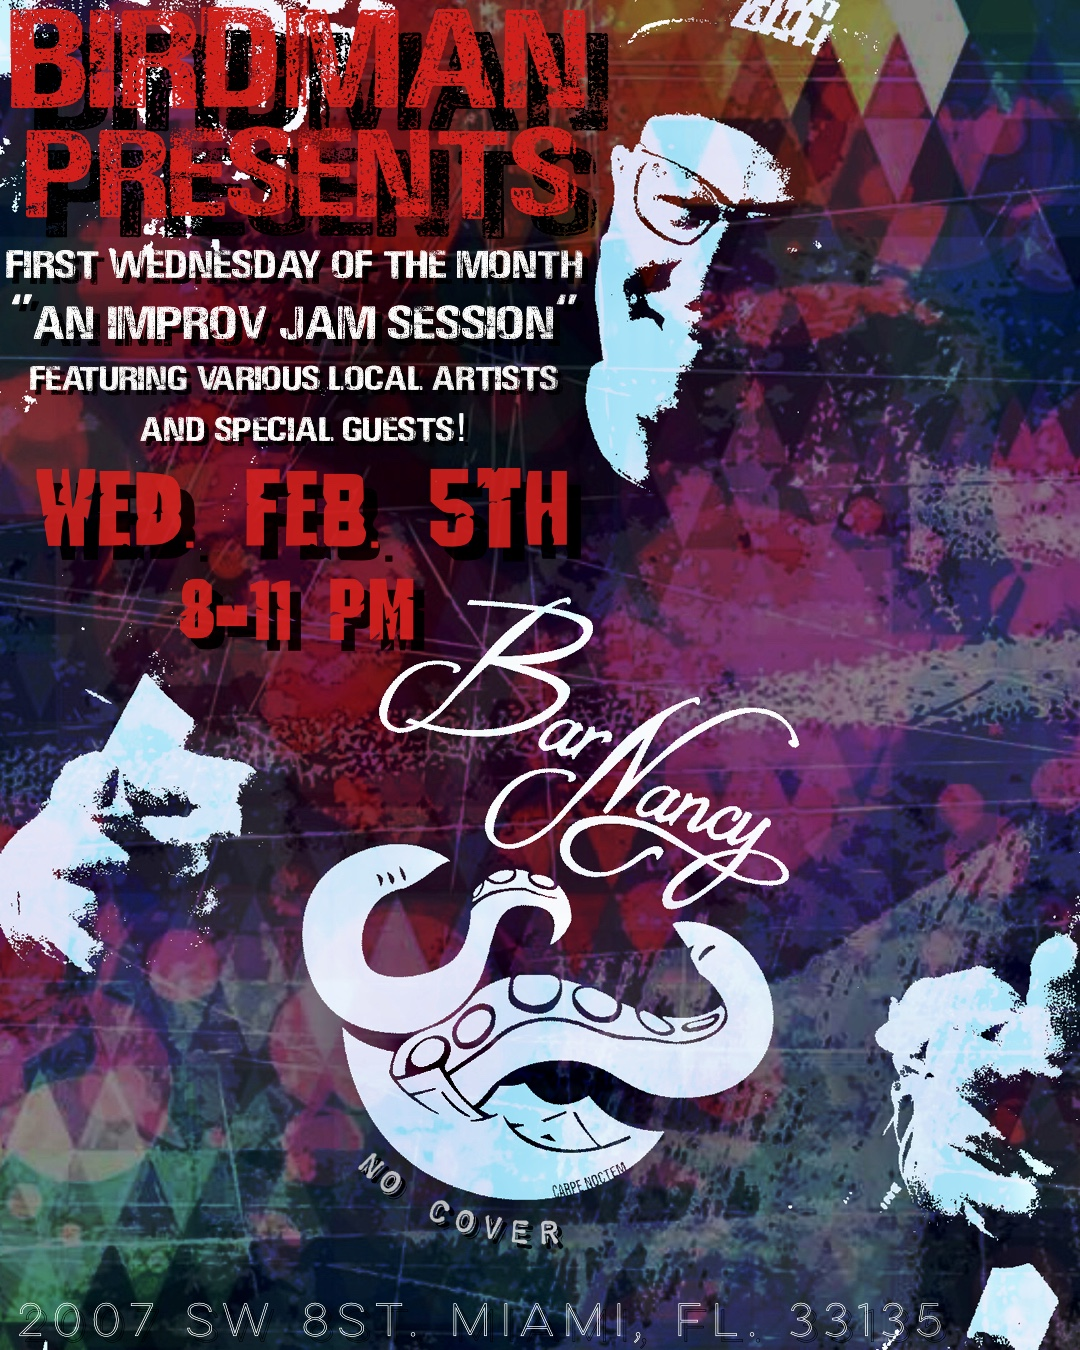 Birdman Presents! Jam with the Clam! 1st Wednesday's! @ Bar Nancy